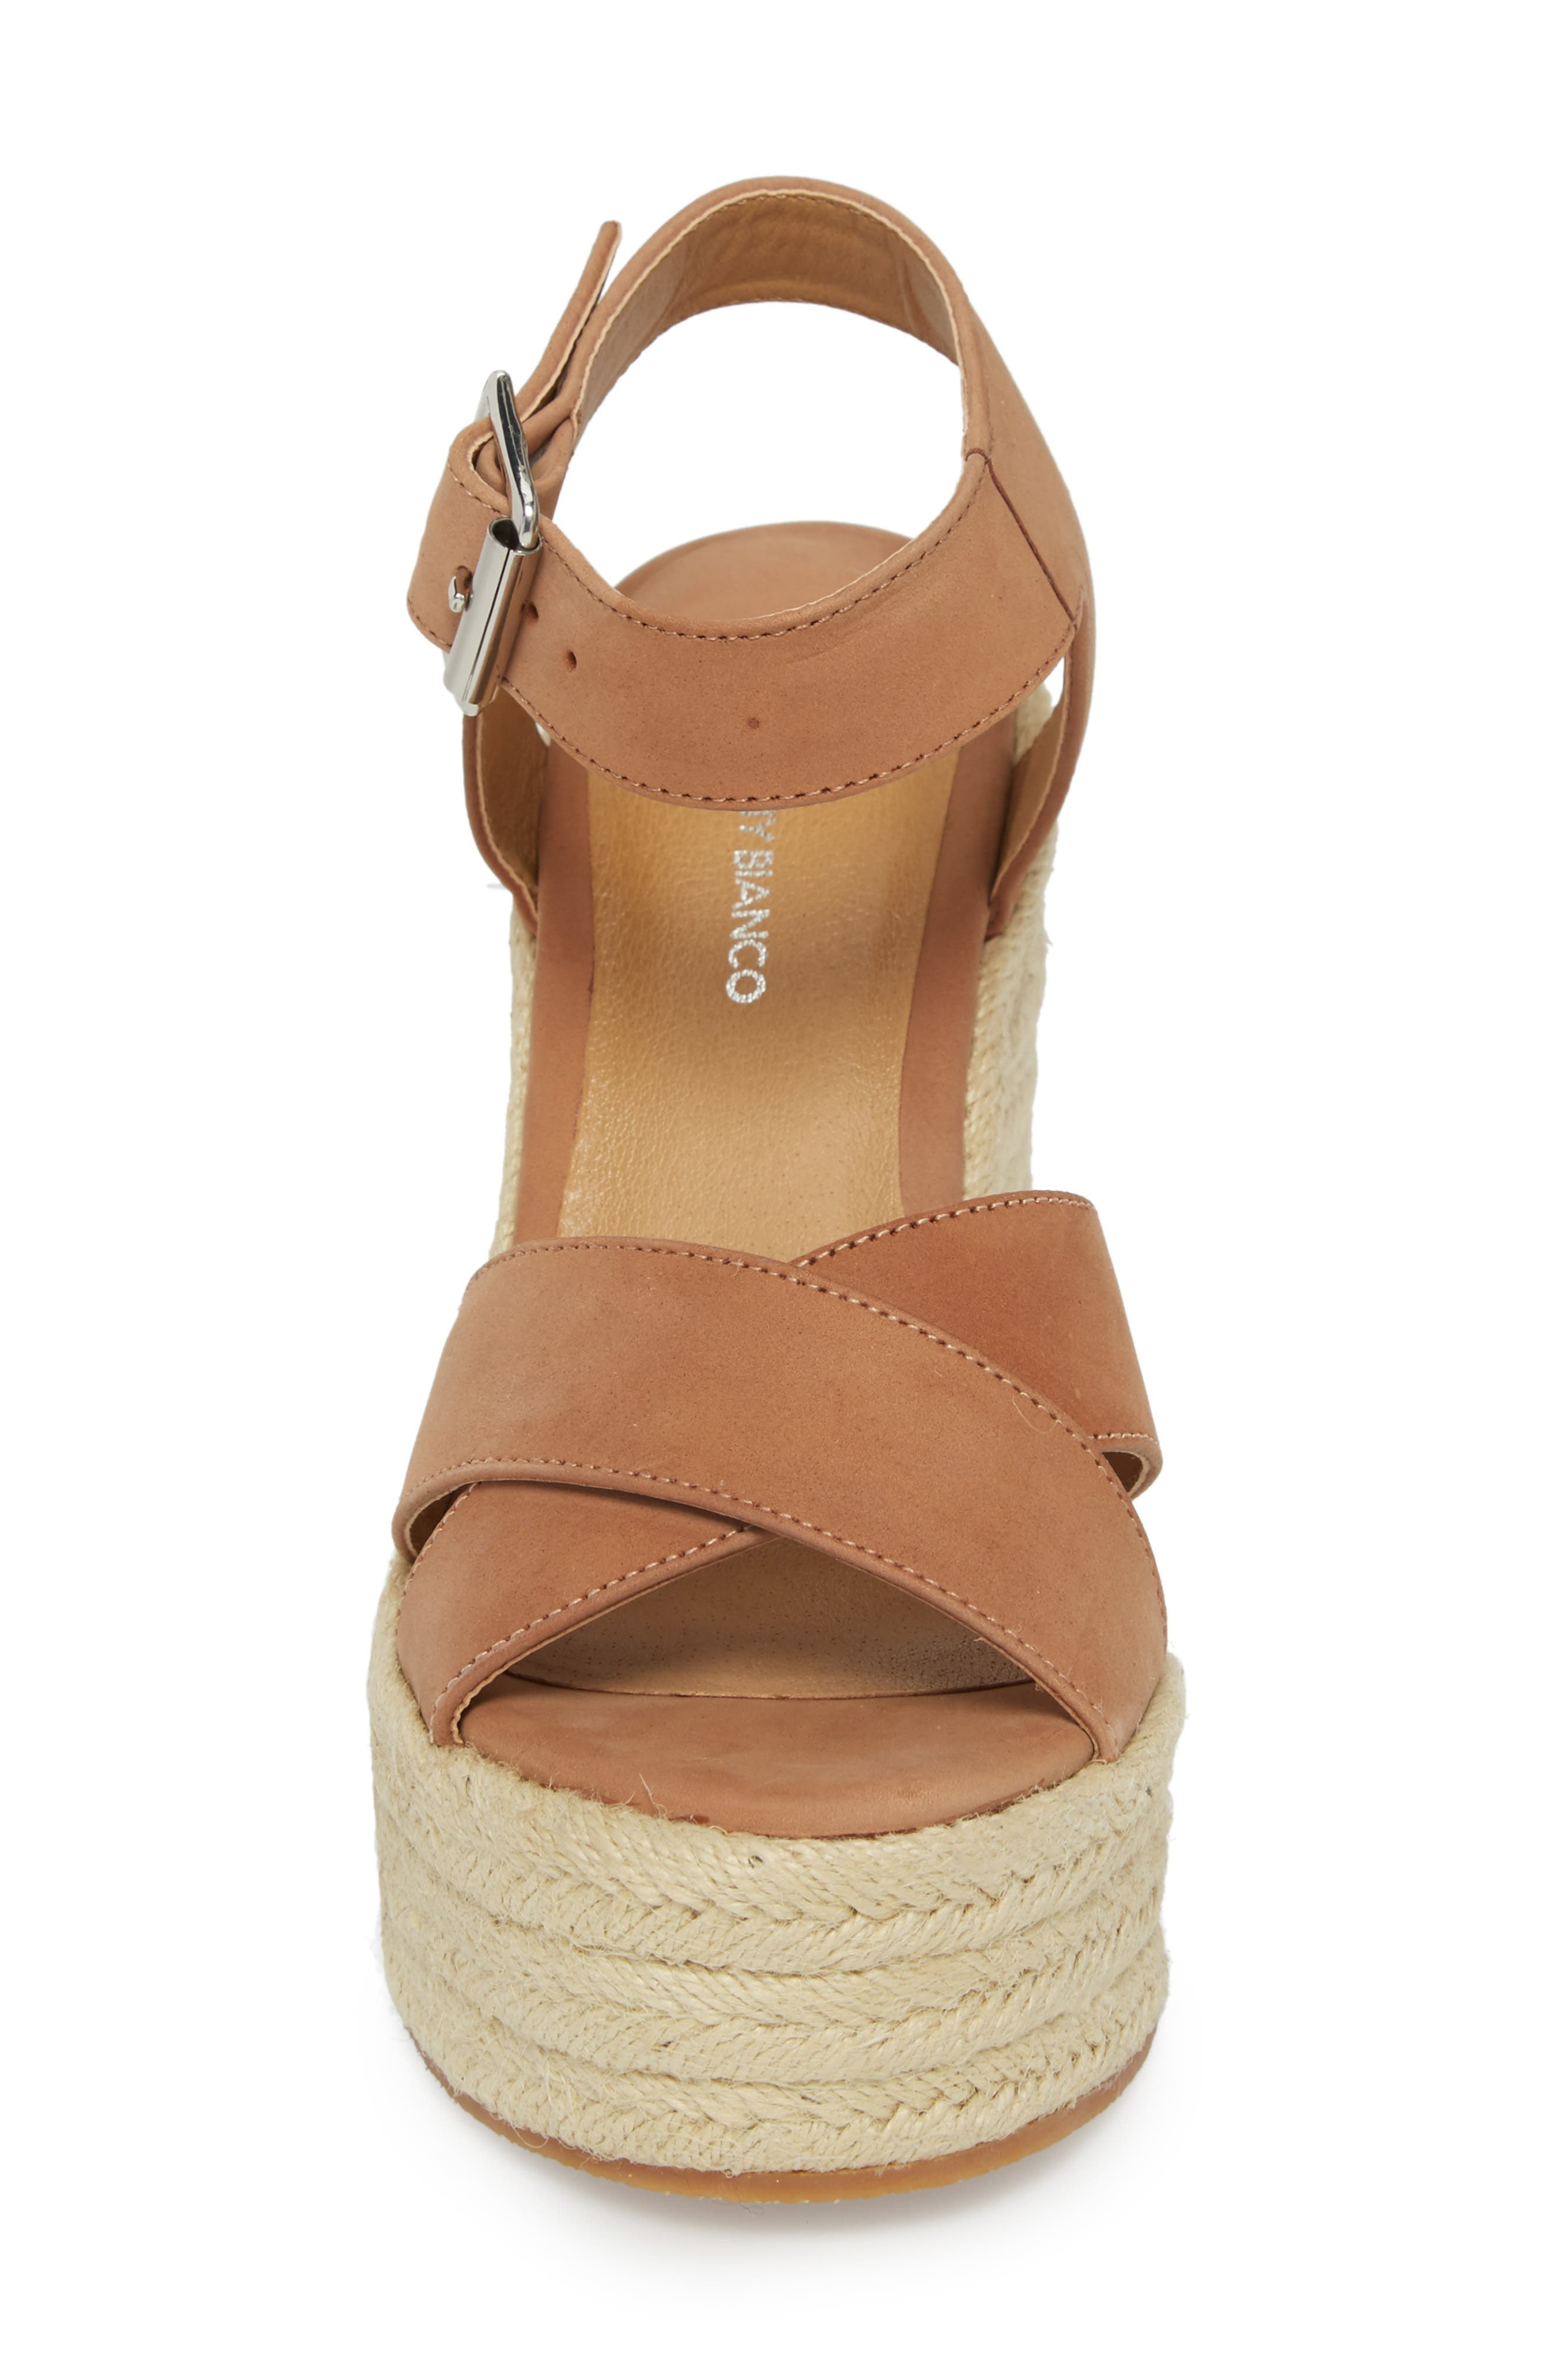 Boston Espadrille Wedge Sandal,                             Alternate thumbnail 4, color,                             CARAMEL PHOENIX LEATHER